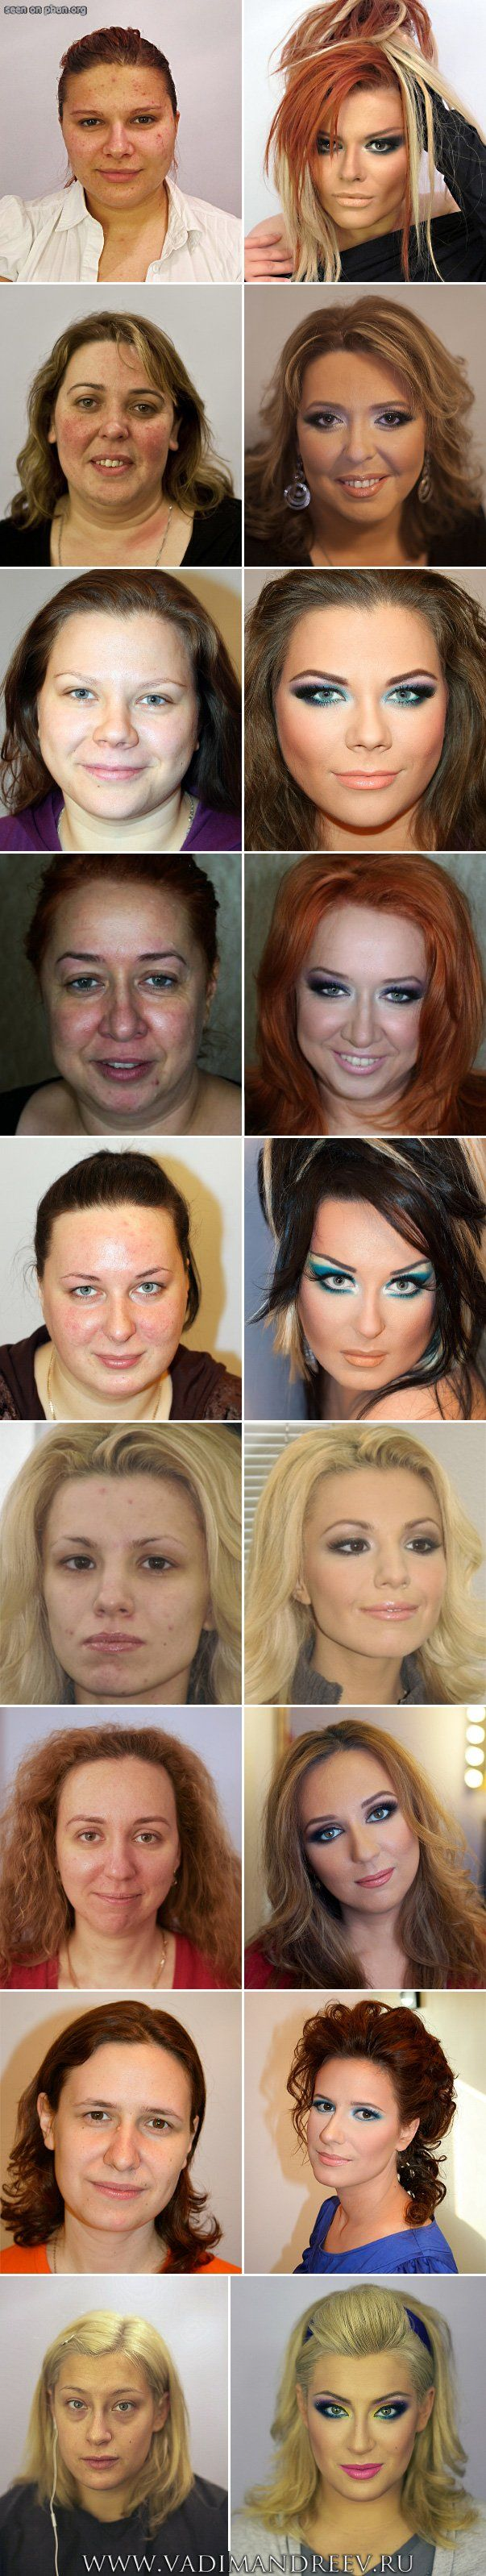 the power of makeup, INSANE!